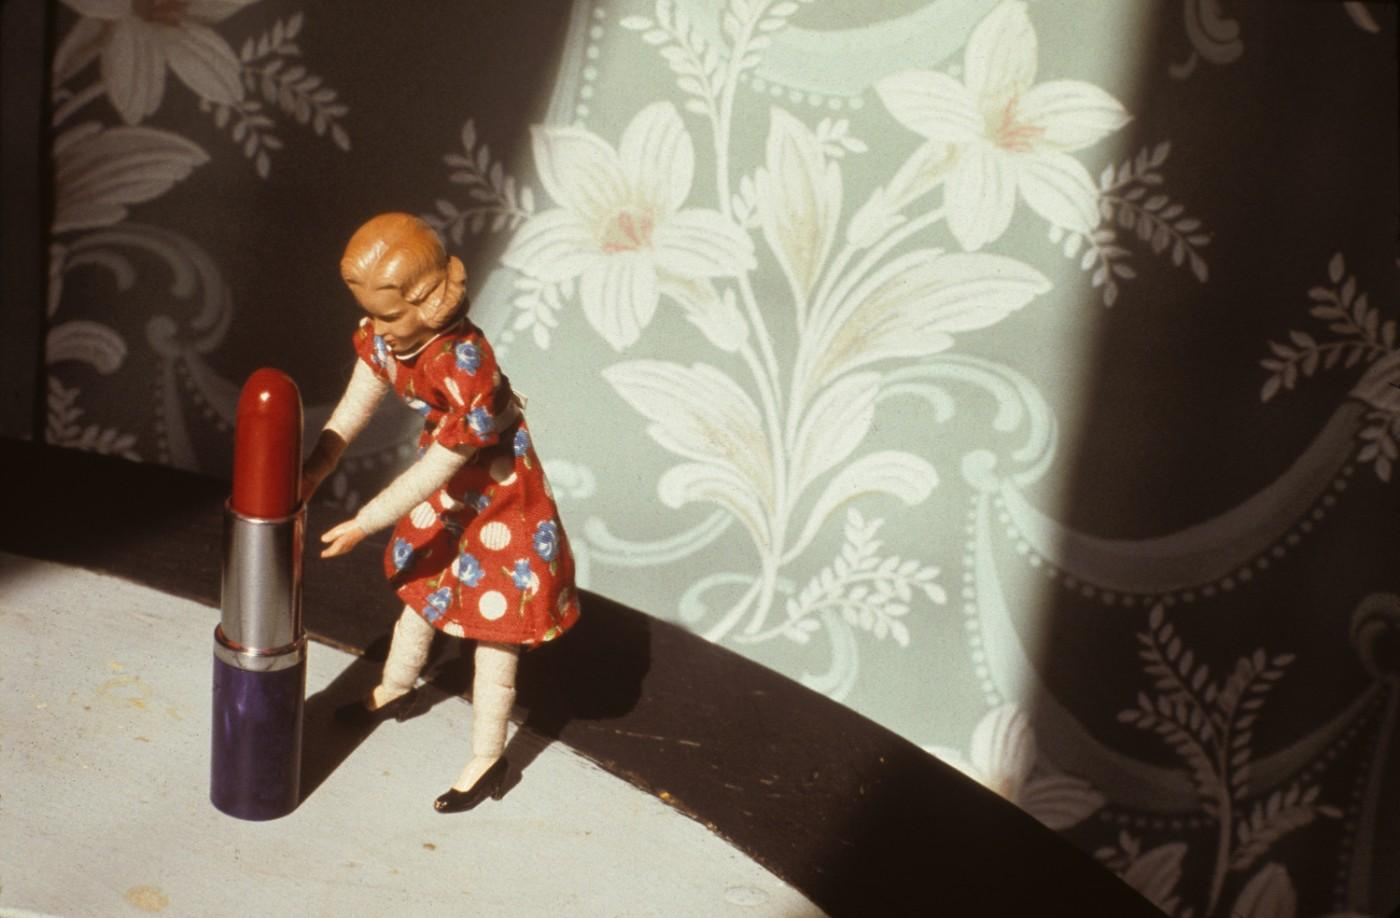 Laurie Simmons, Pushing Lipstick (Spotlight), 1979